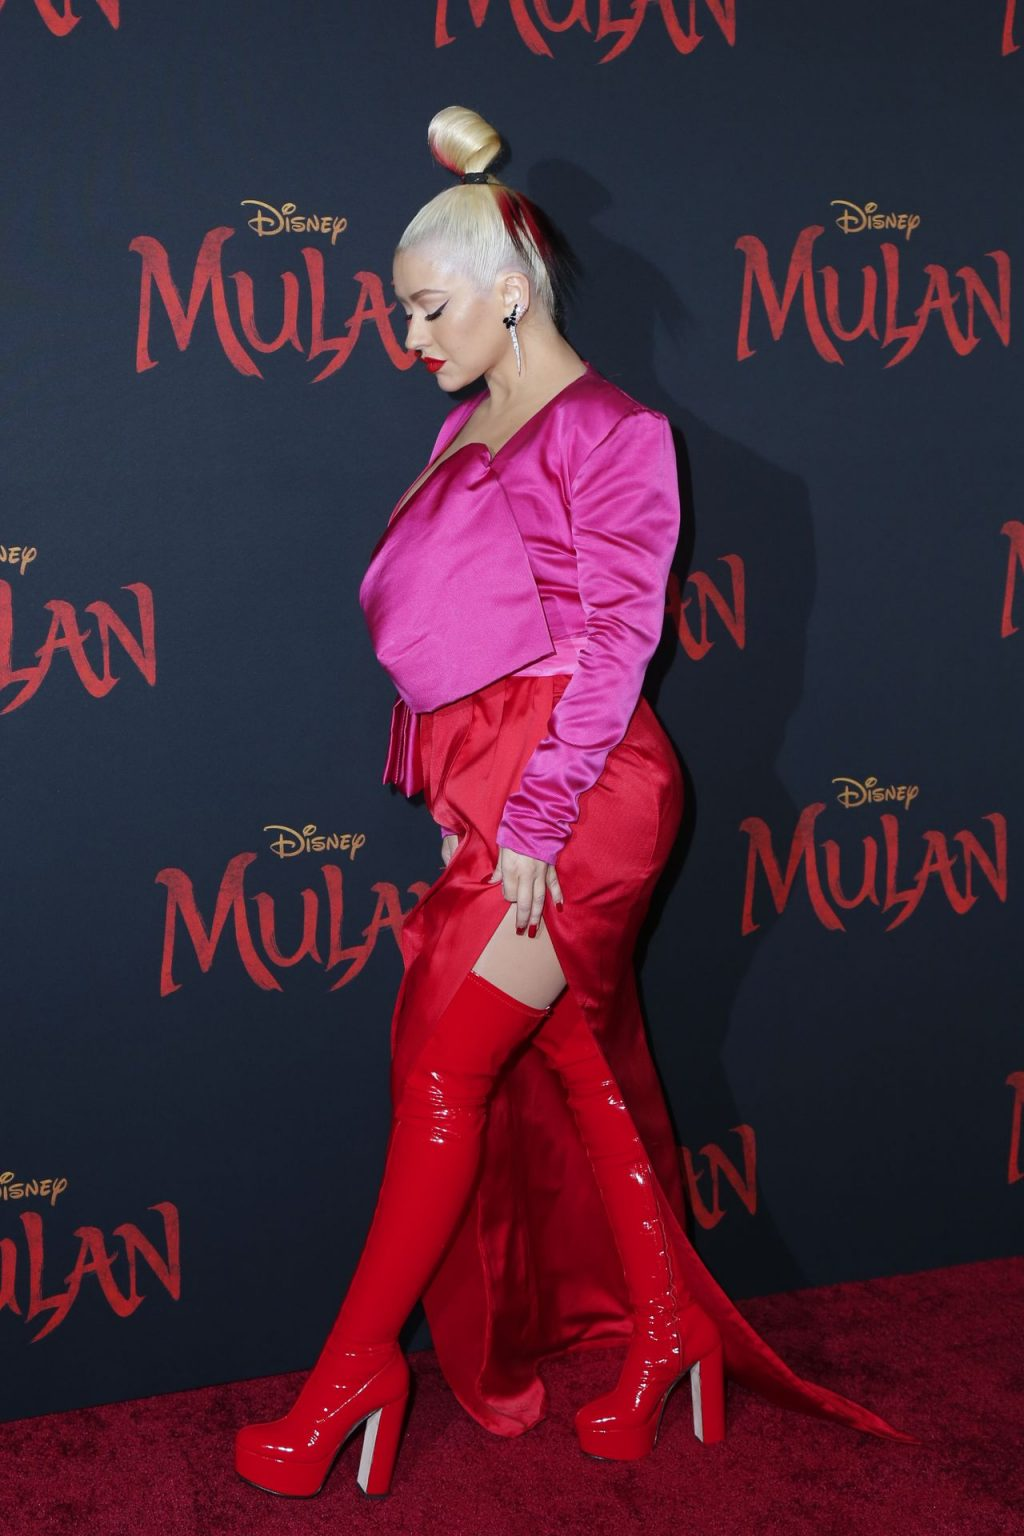 Christina Aguilera Attends the Premiere of Disney's Mulan in LA (96 Photos)